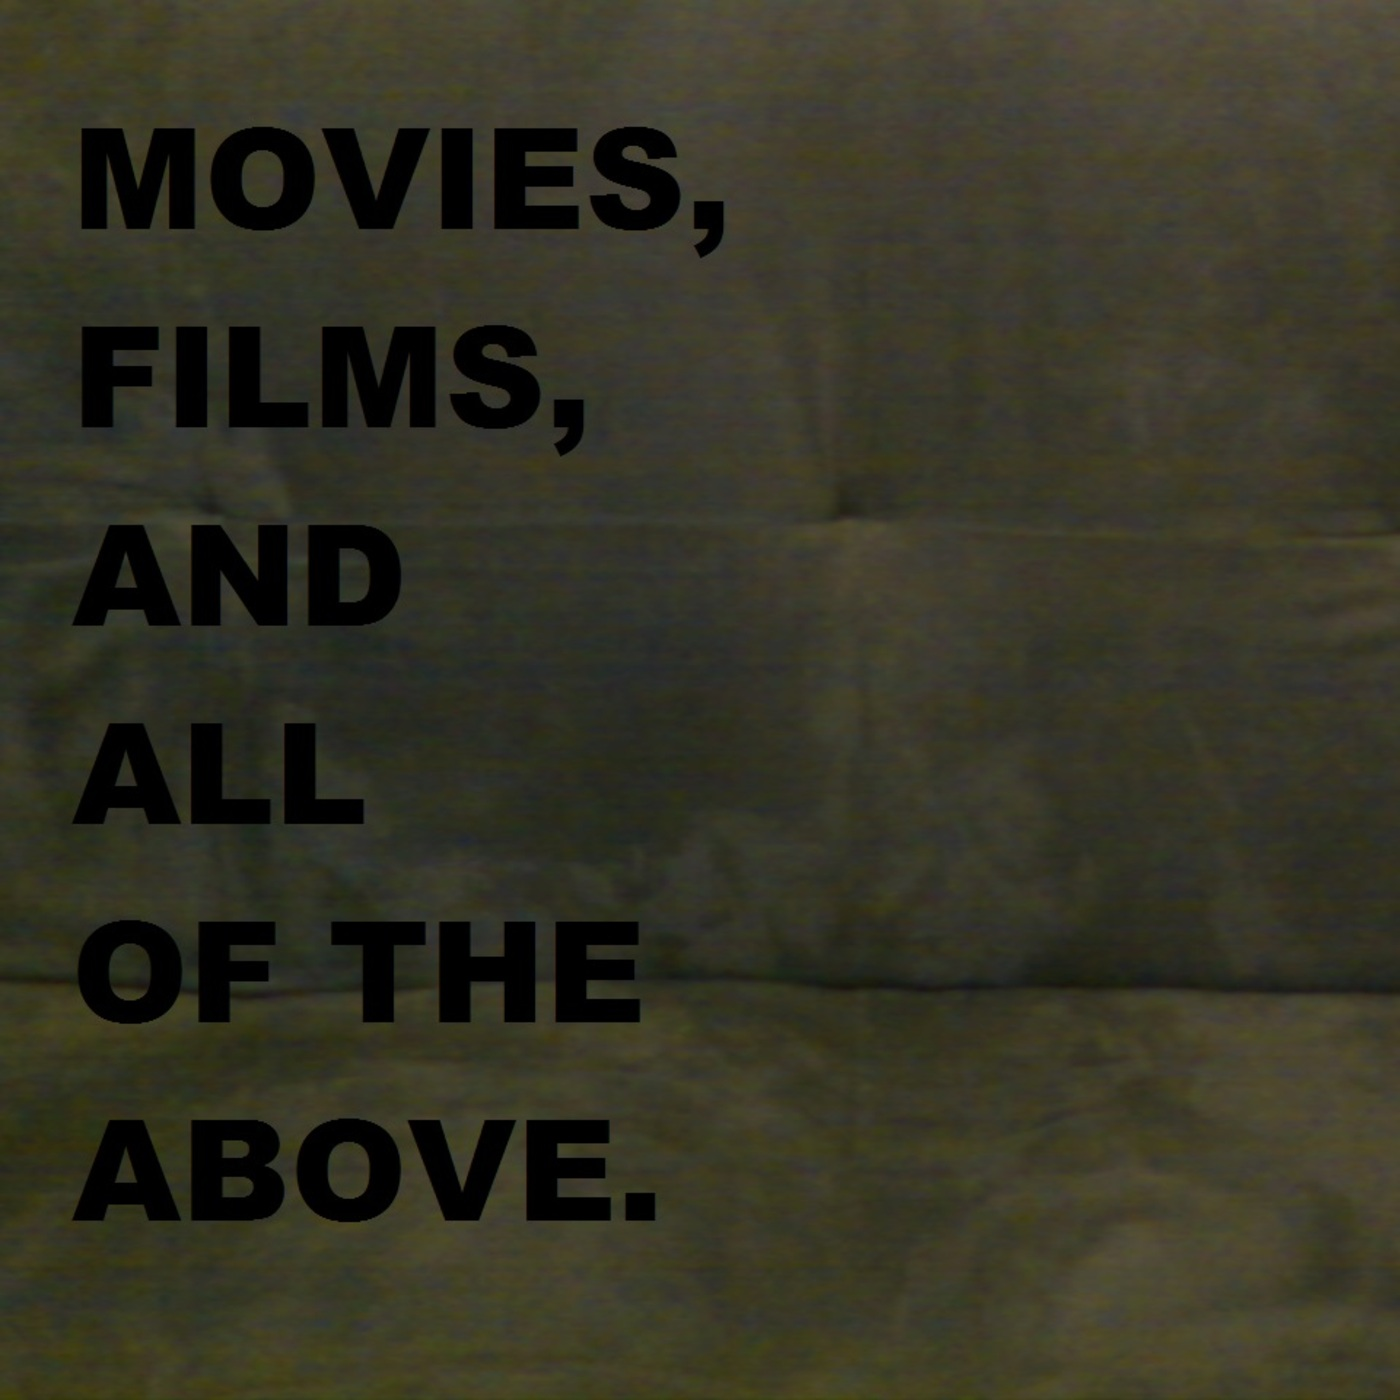 Movies, Films, and All of the Above